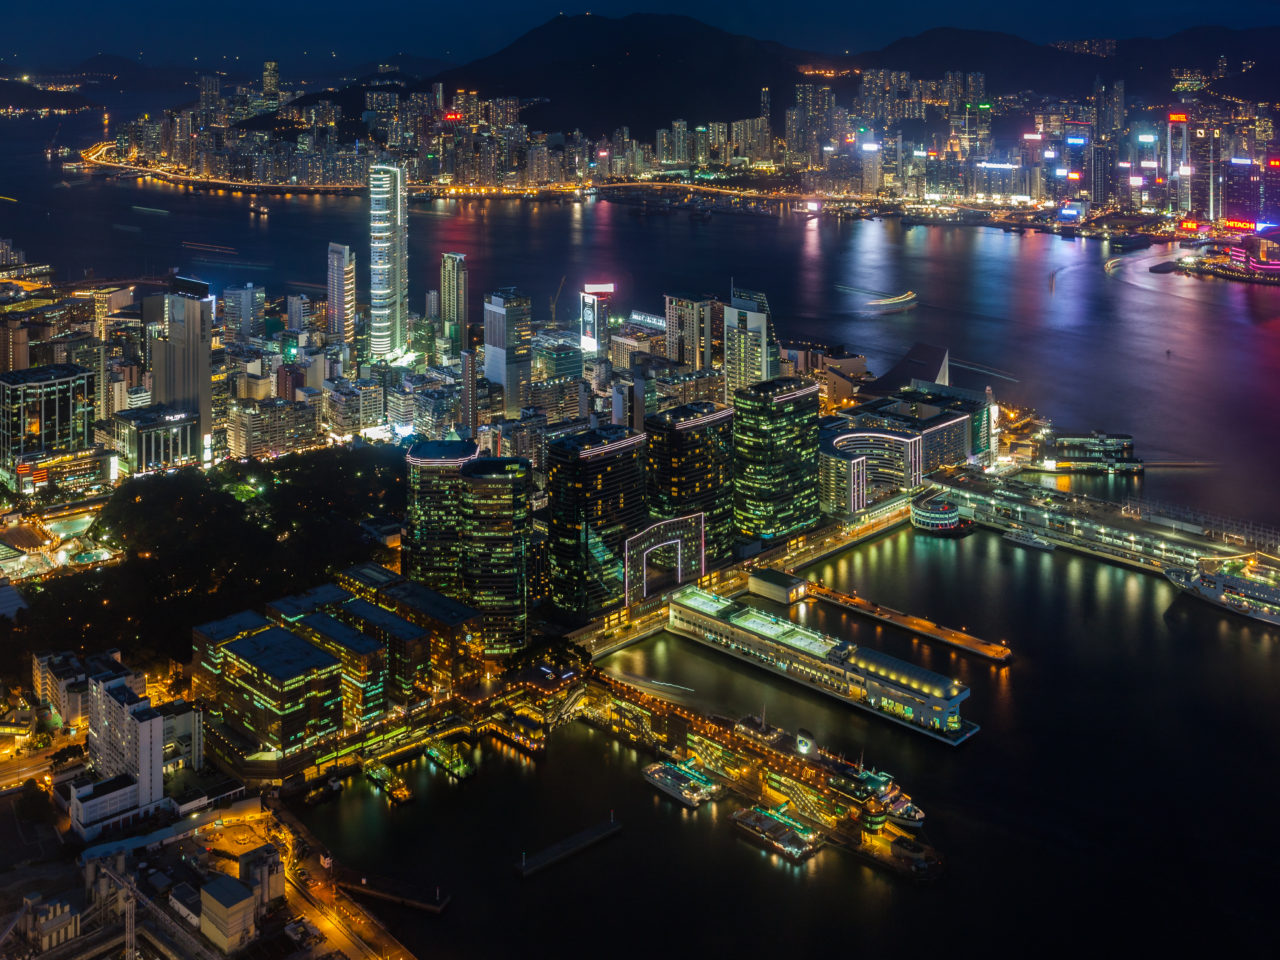 Old Wallpaper Iphone X Victoria Harbour From Hong Kong Hd Wallpapers